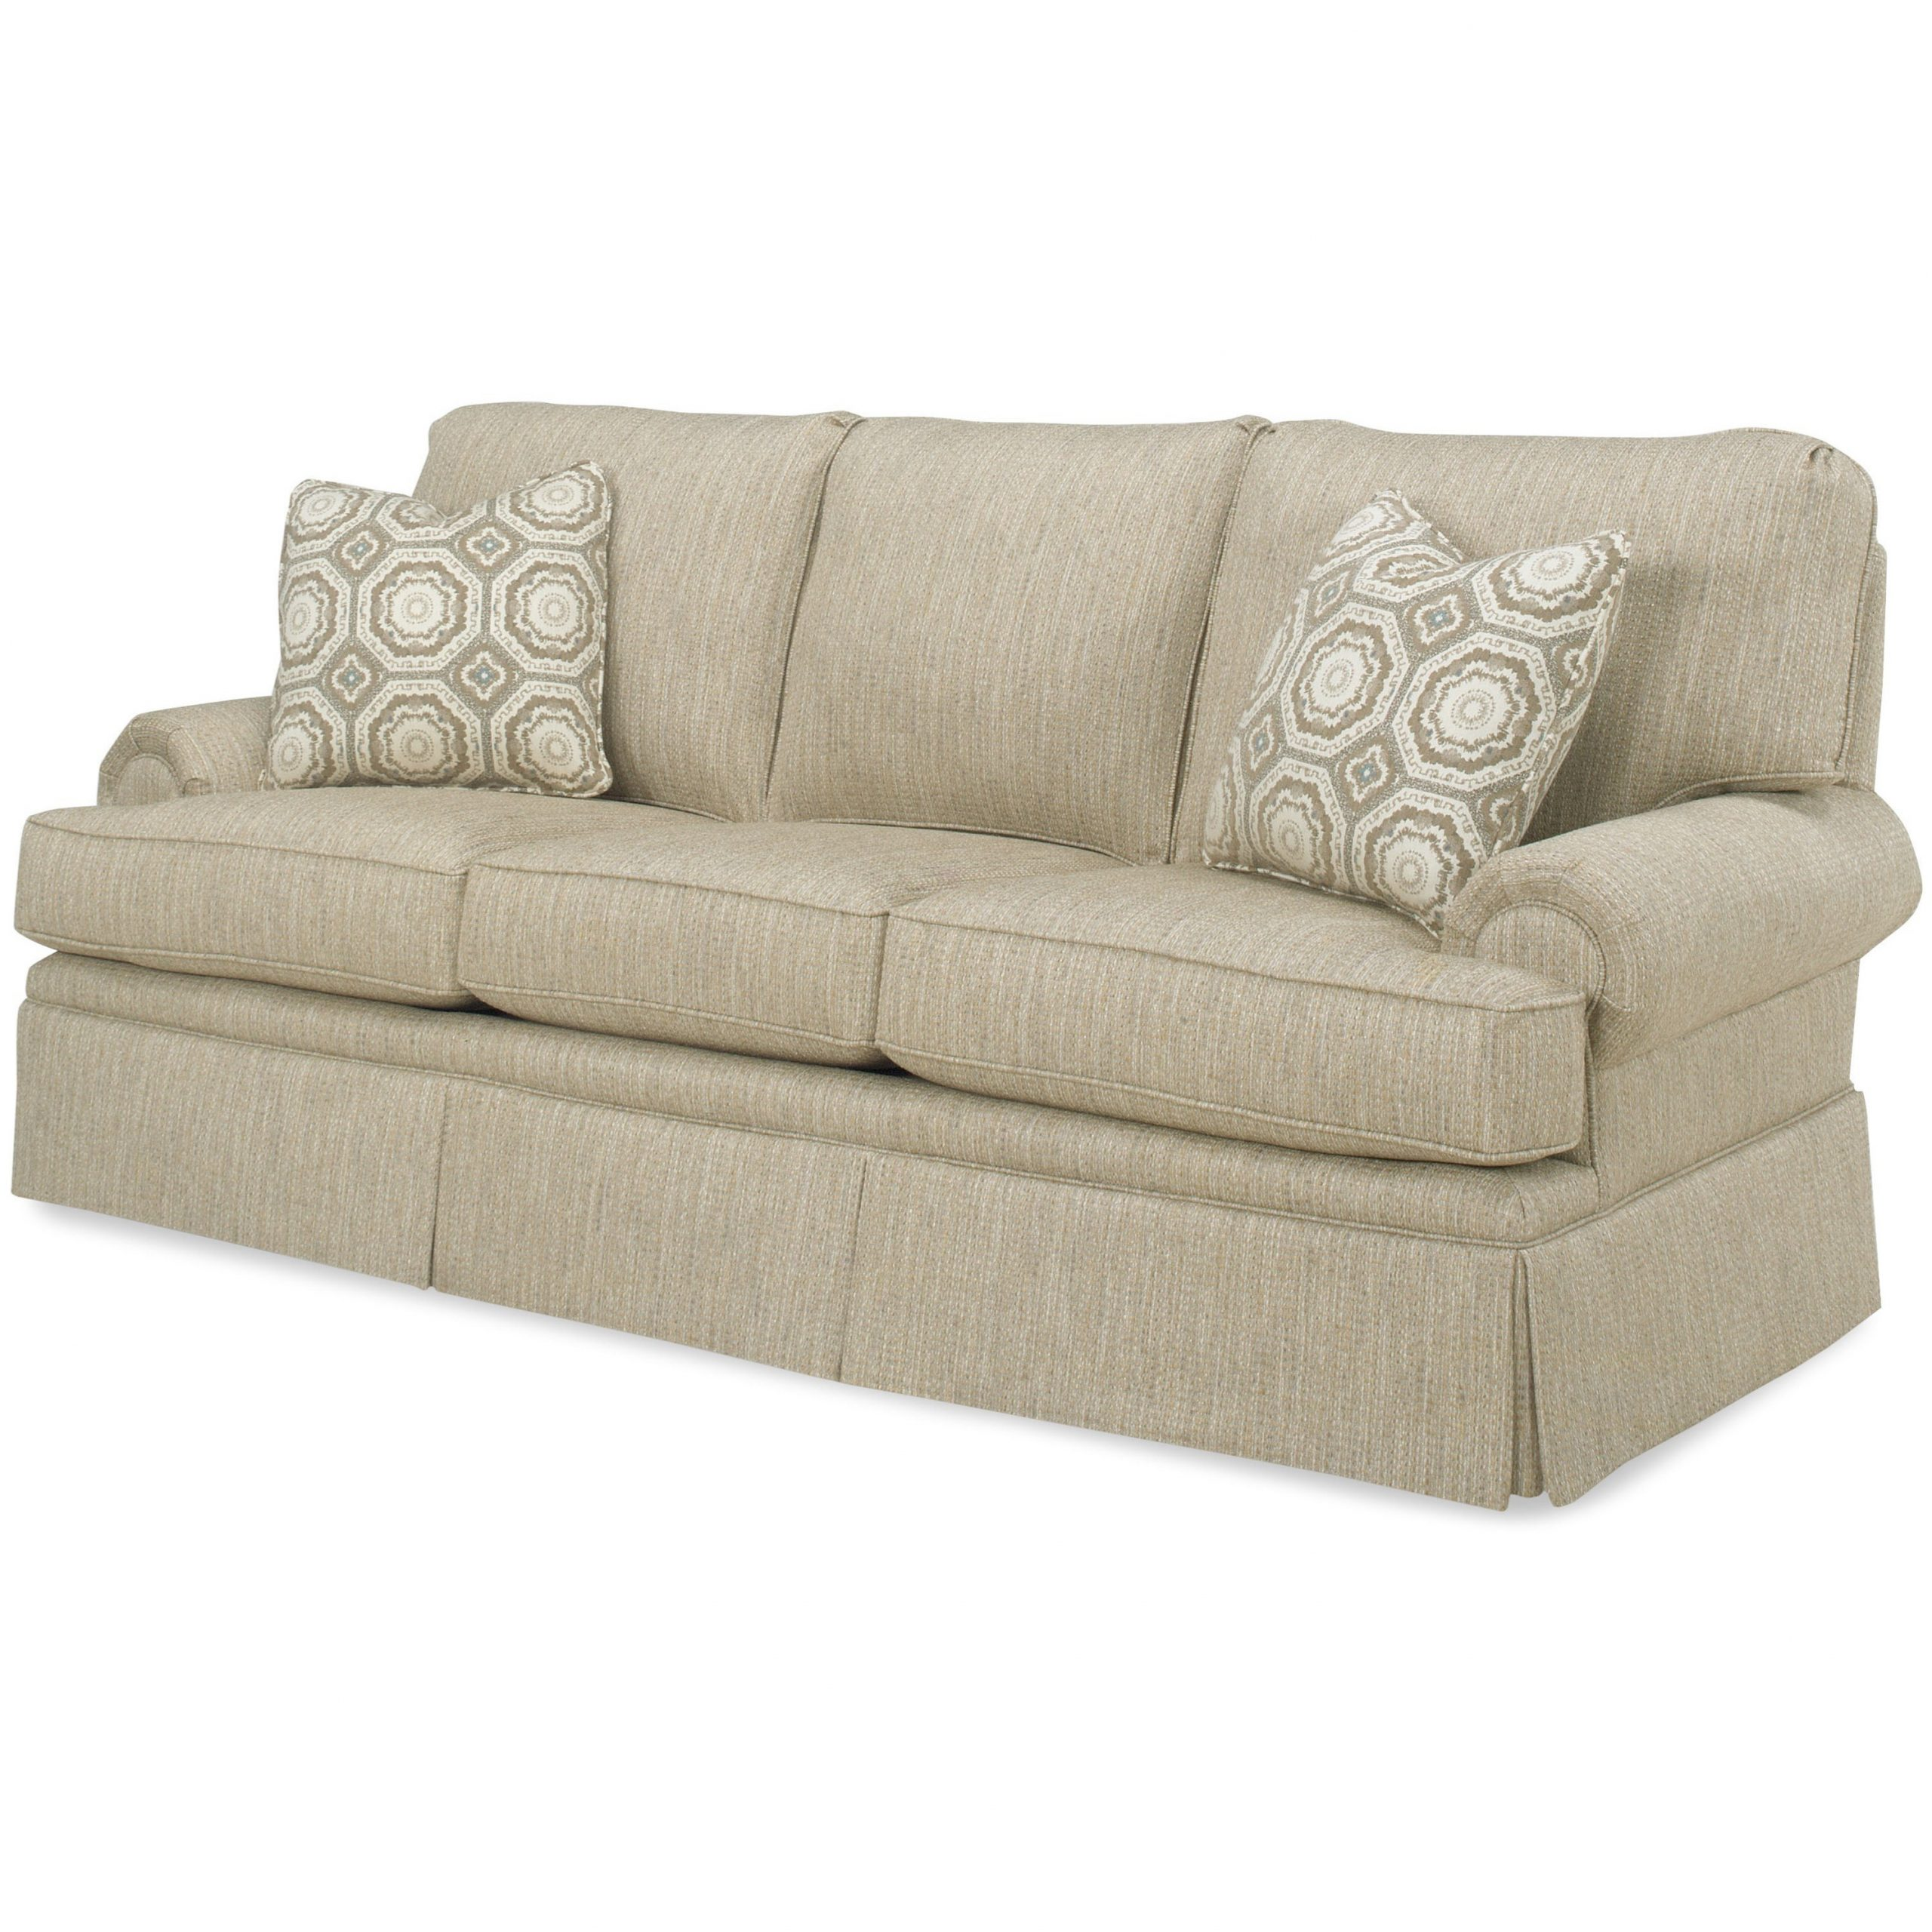 Most Recently Released Winston Sofa Sectional Sofas Regarding Temple Furniture Winston Sofa With Skirt (View 5 of 20)